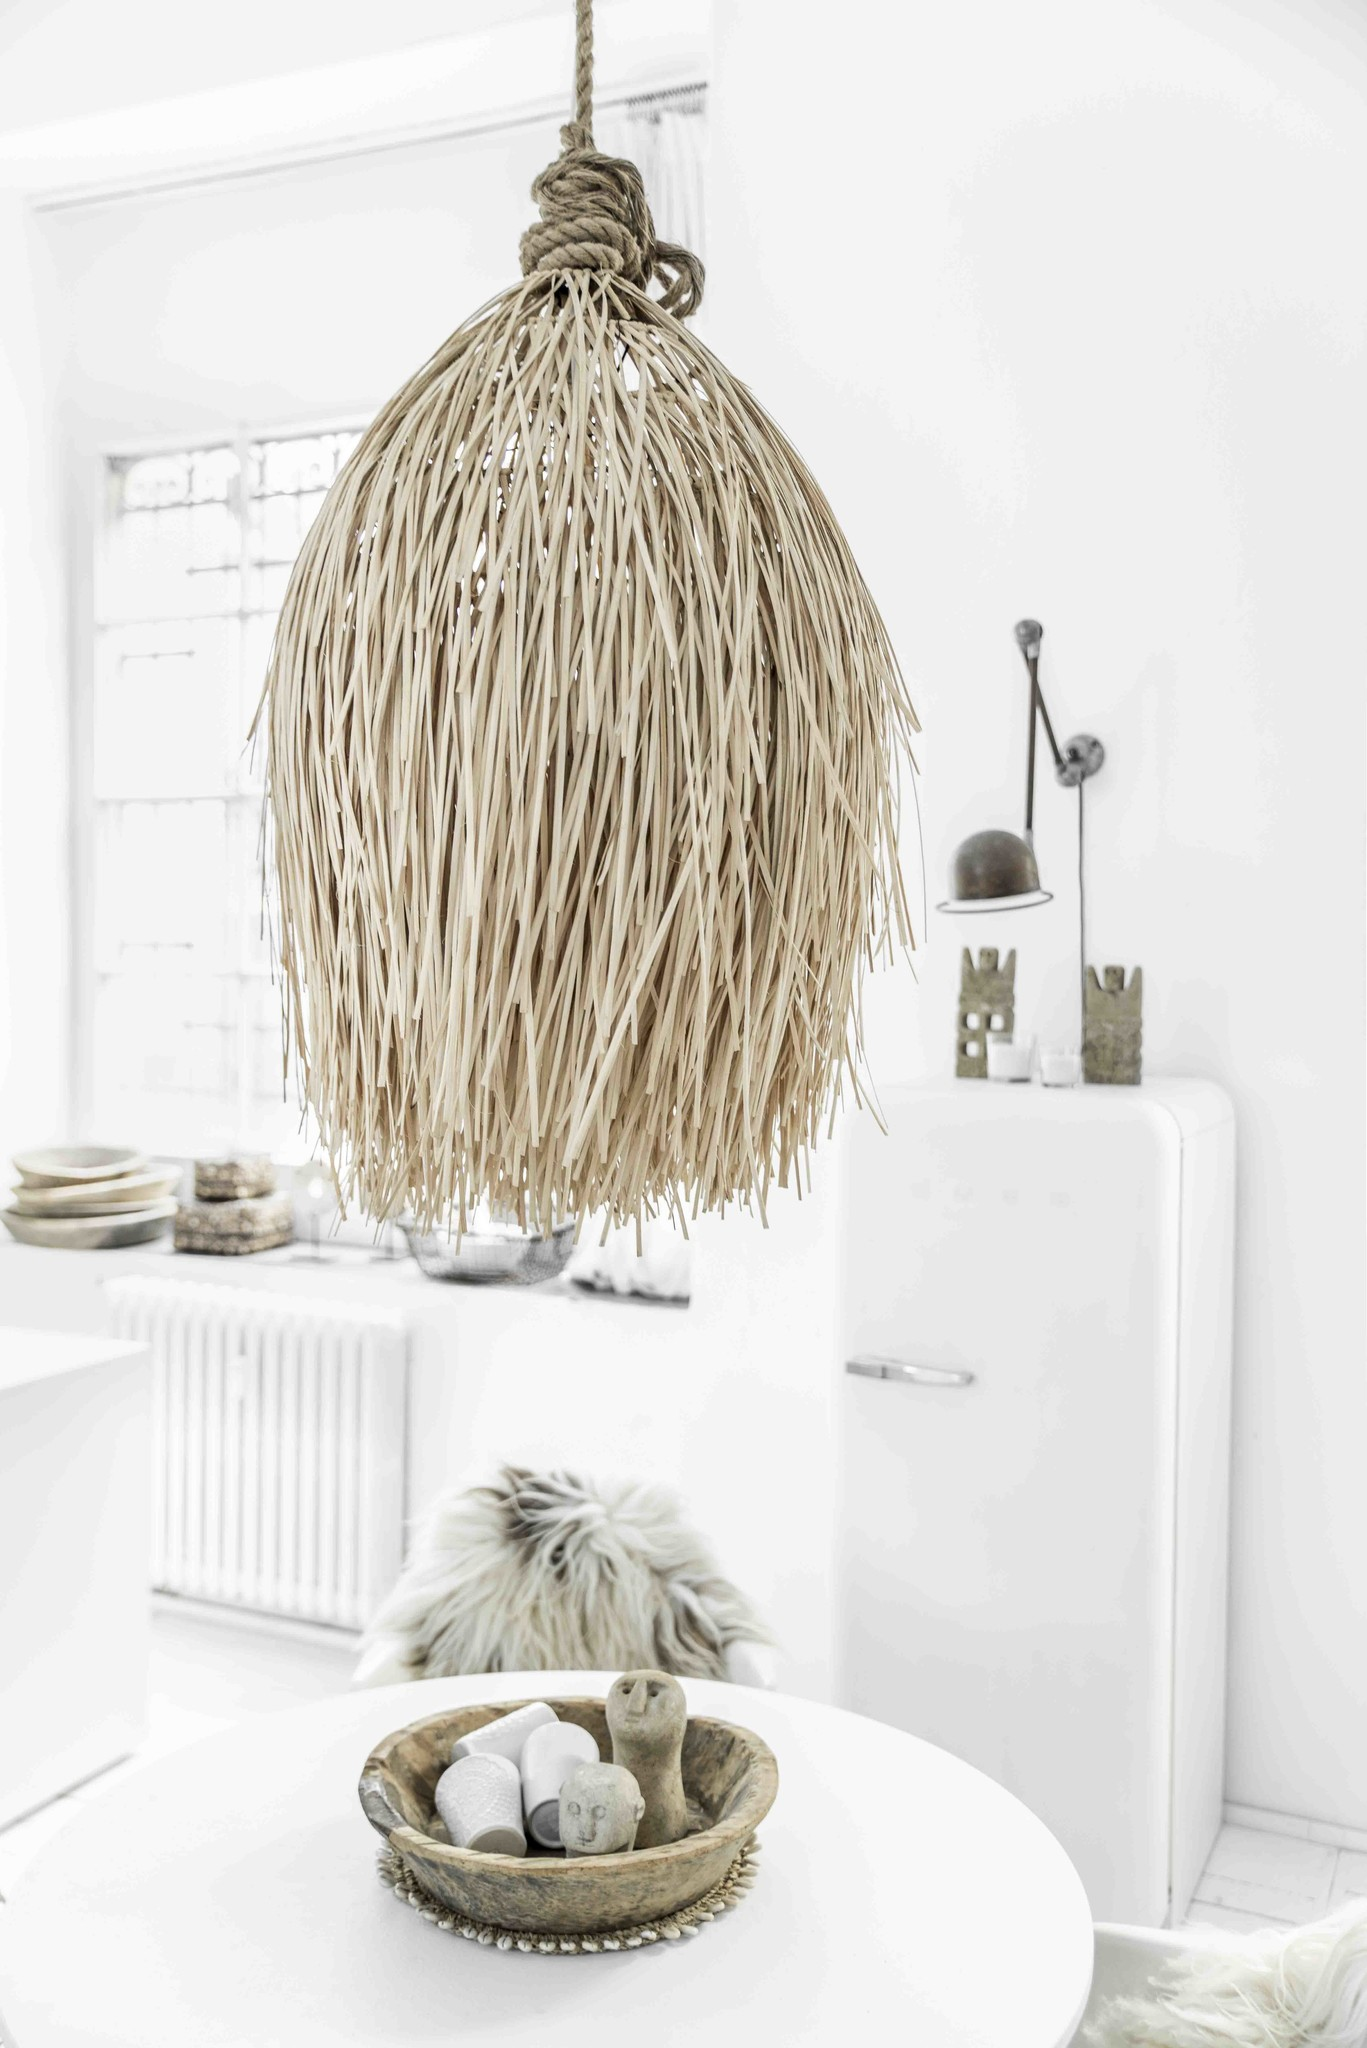 Petite Lily Interiors Suspension en rotin Shaggy - natural - Ø45xH75